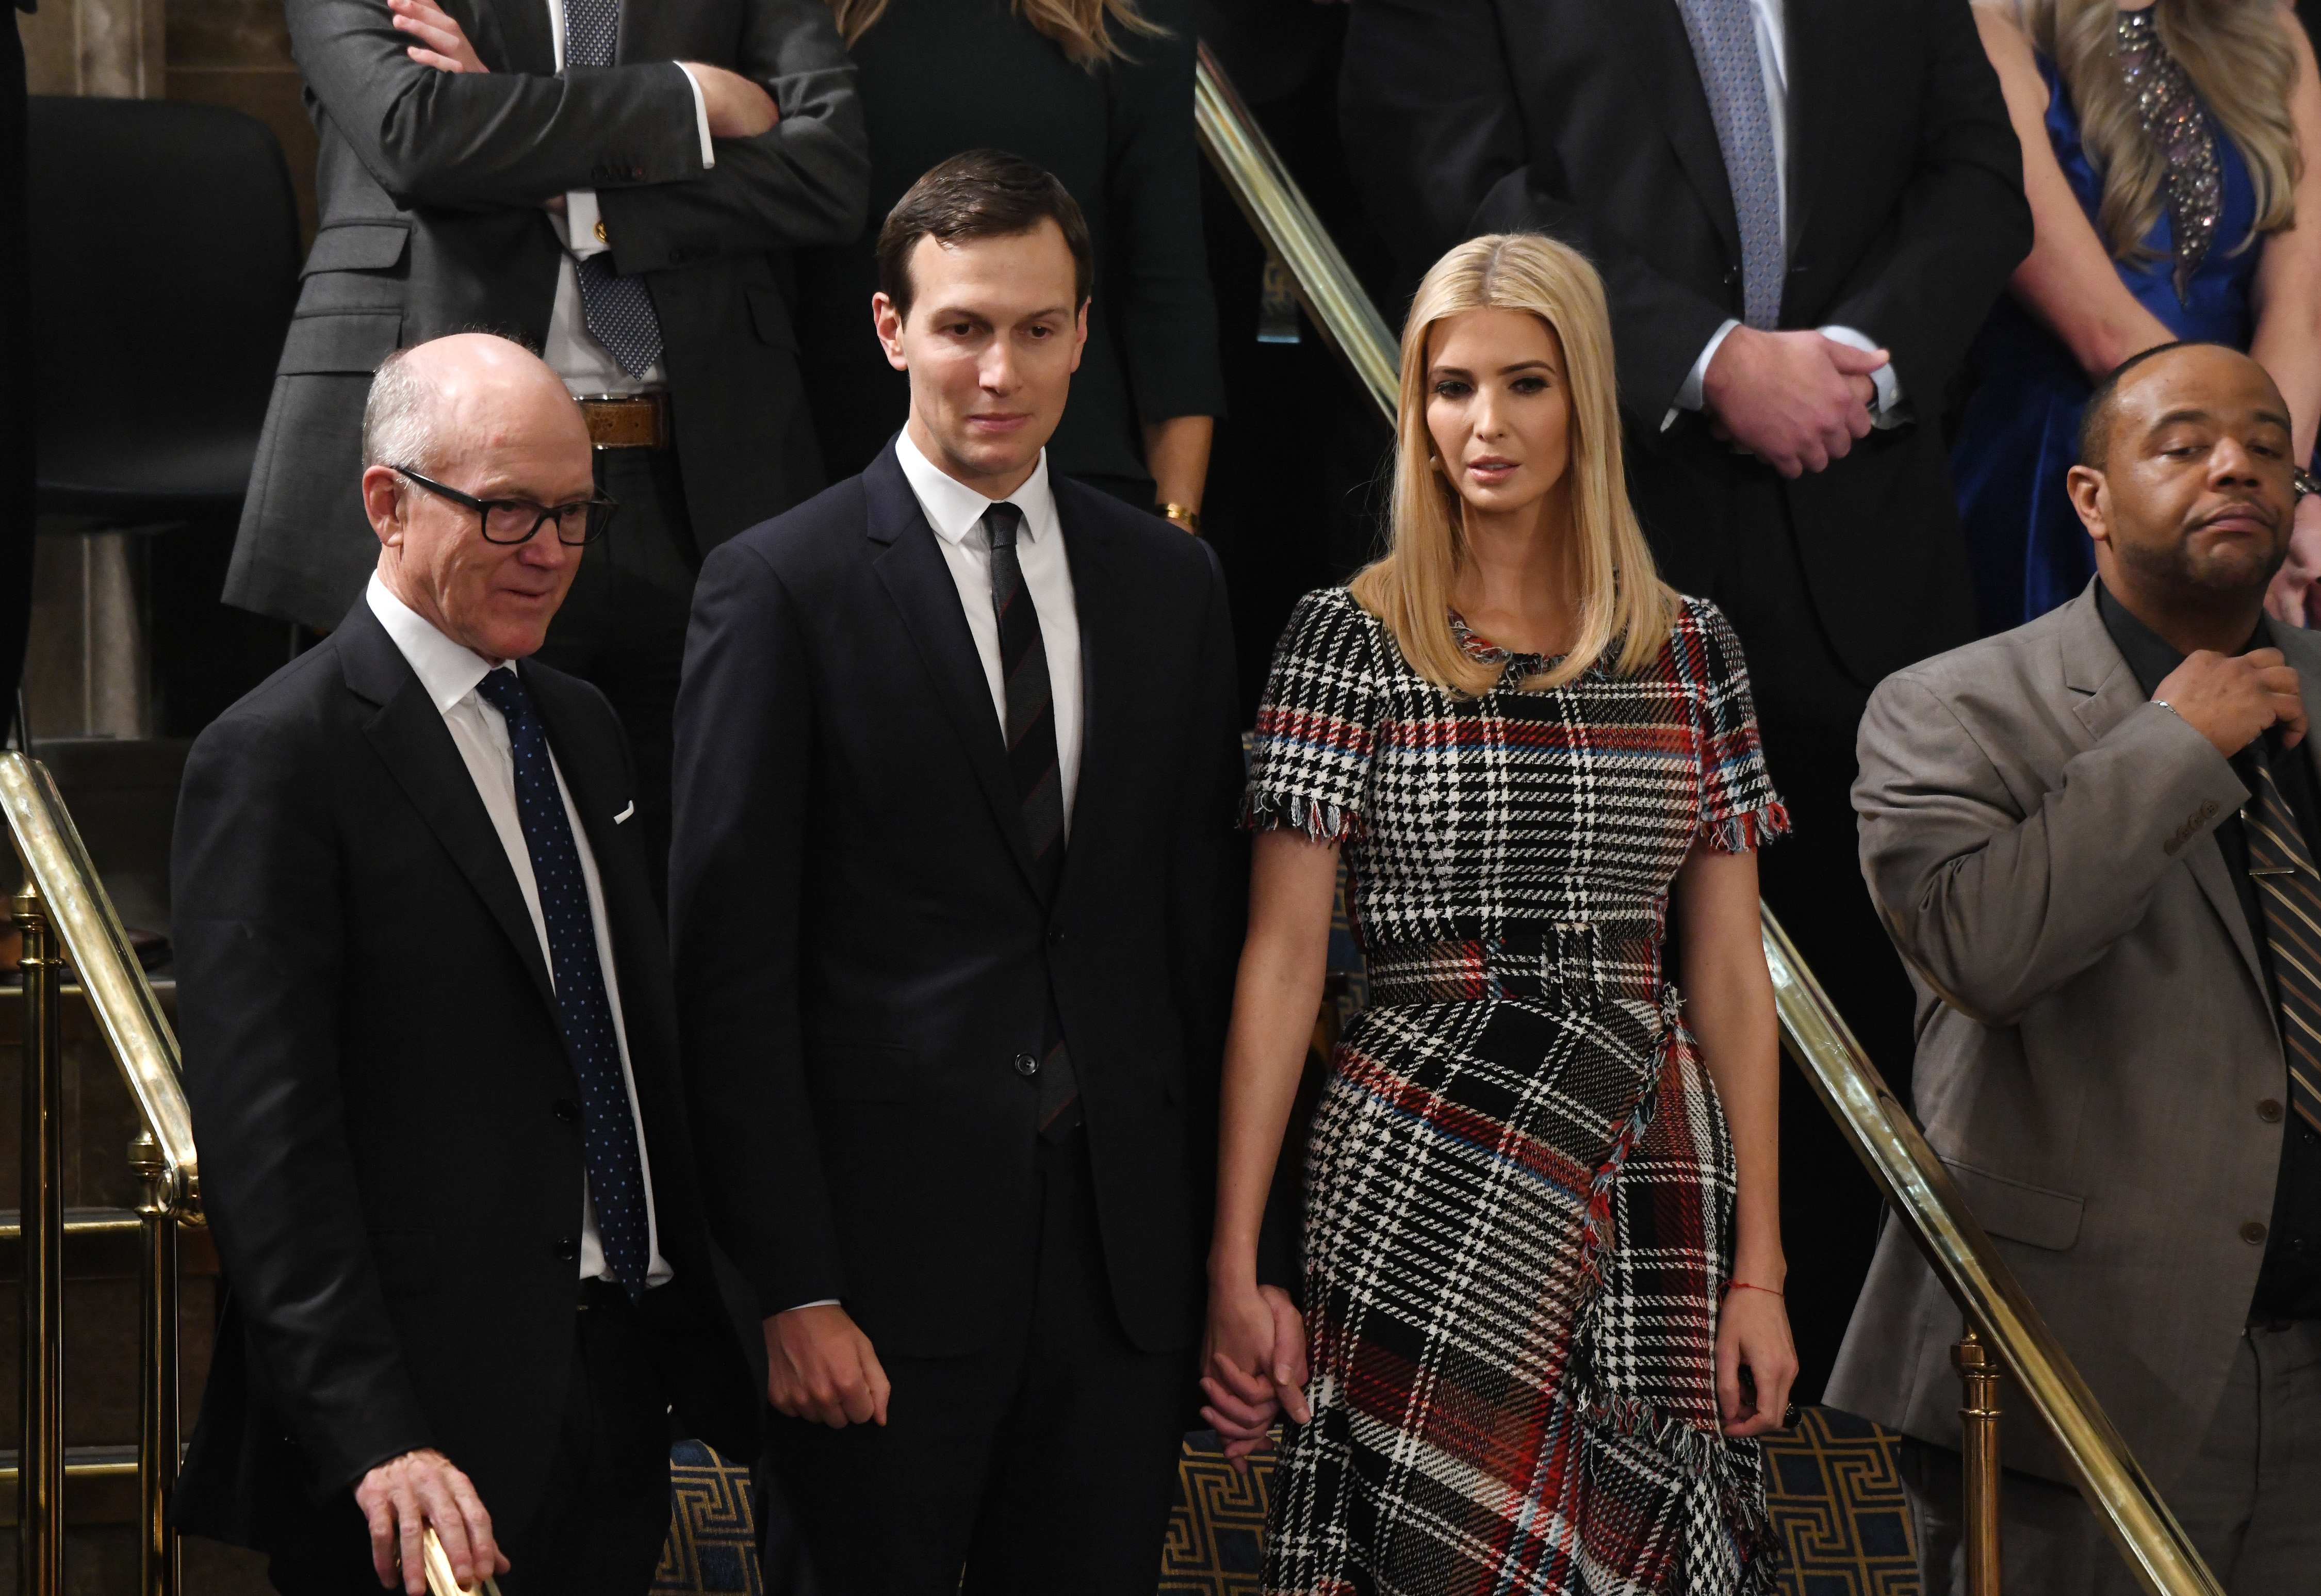 Jared Kushner and Ivanka Trump attend the State of the Union address before a joint session of Congress on Capitol Hill.